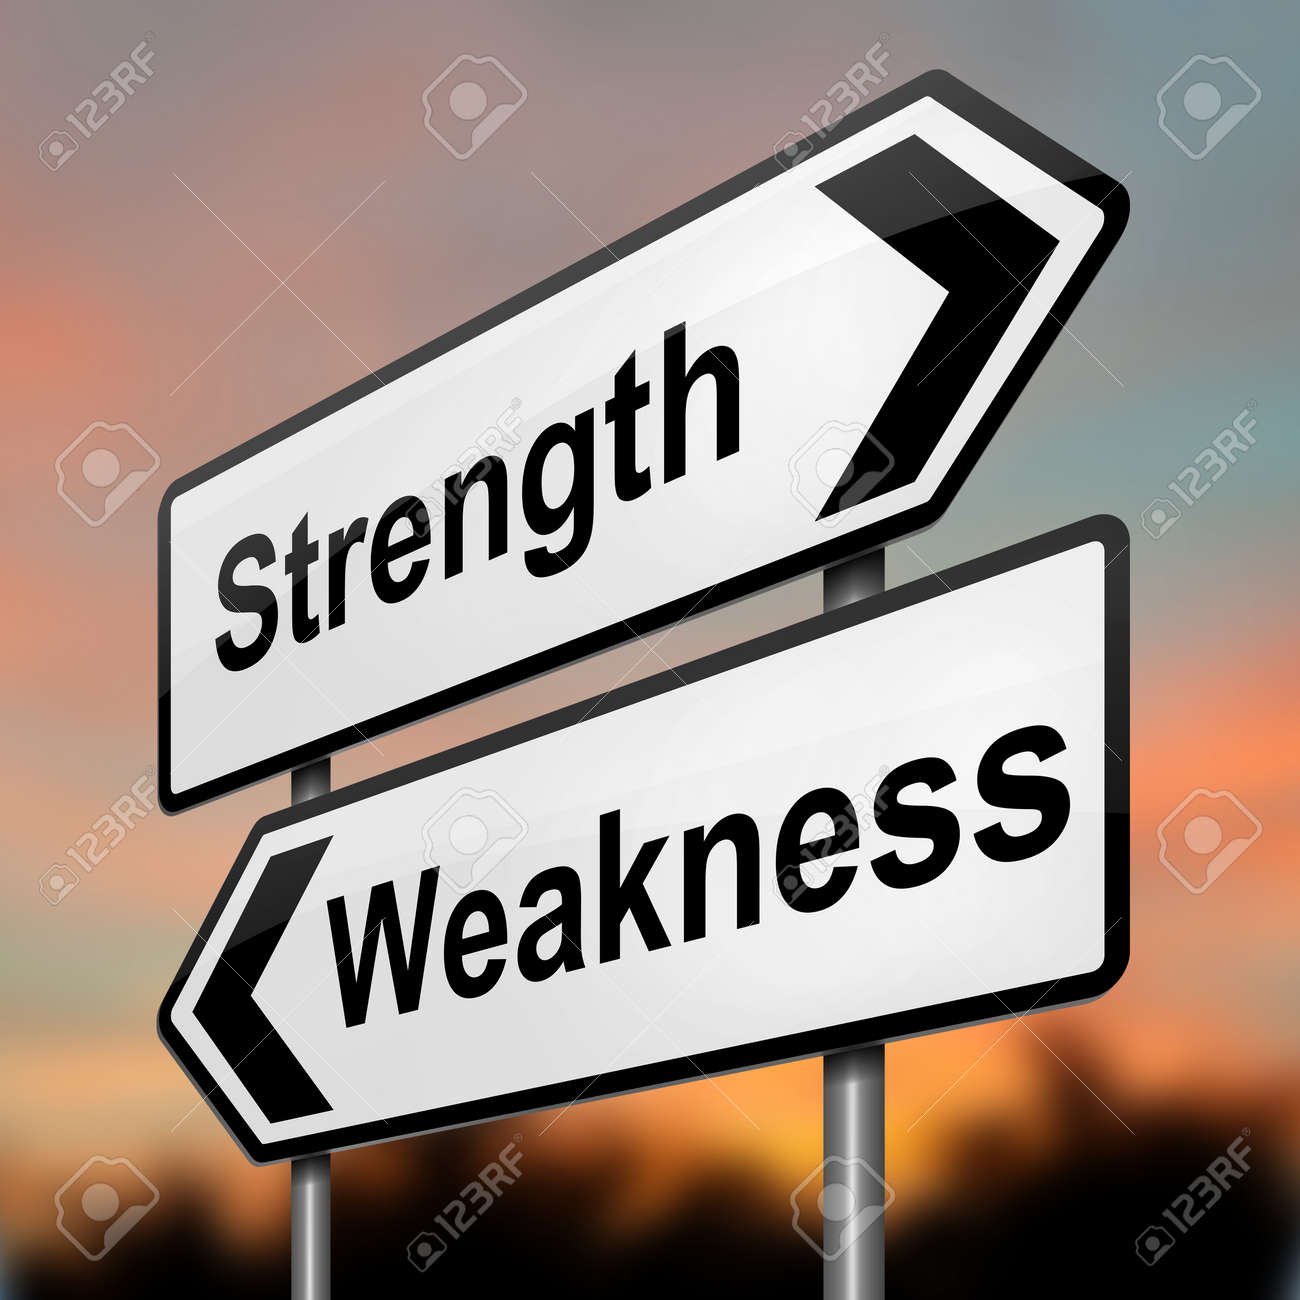 illustration depicting a roadsign a strength and weakness illustration illustration depicting a roadsign a strength and weakness concept blurred dusk background